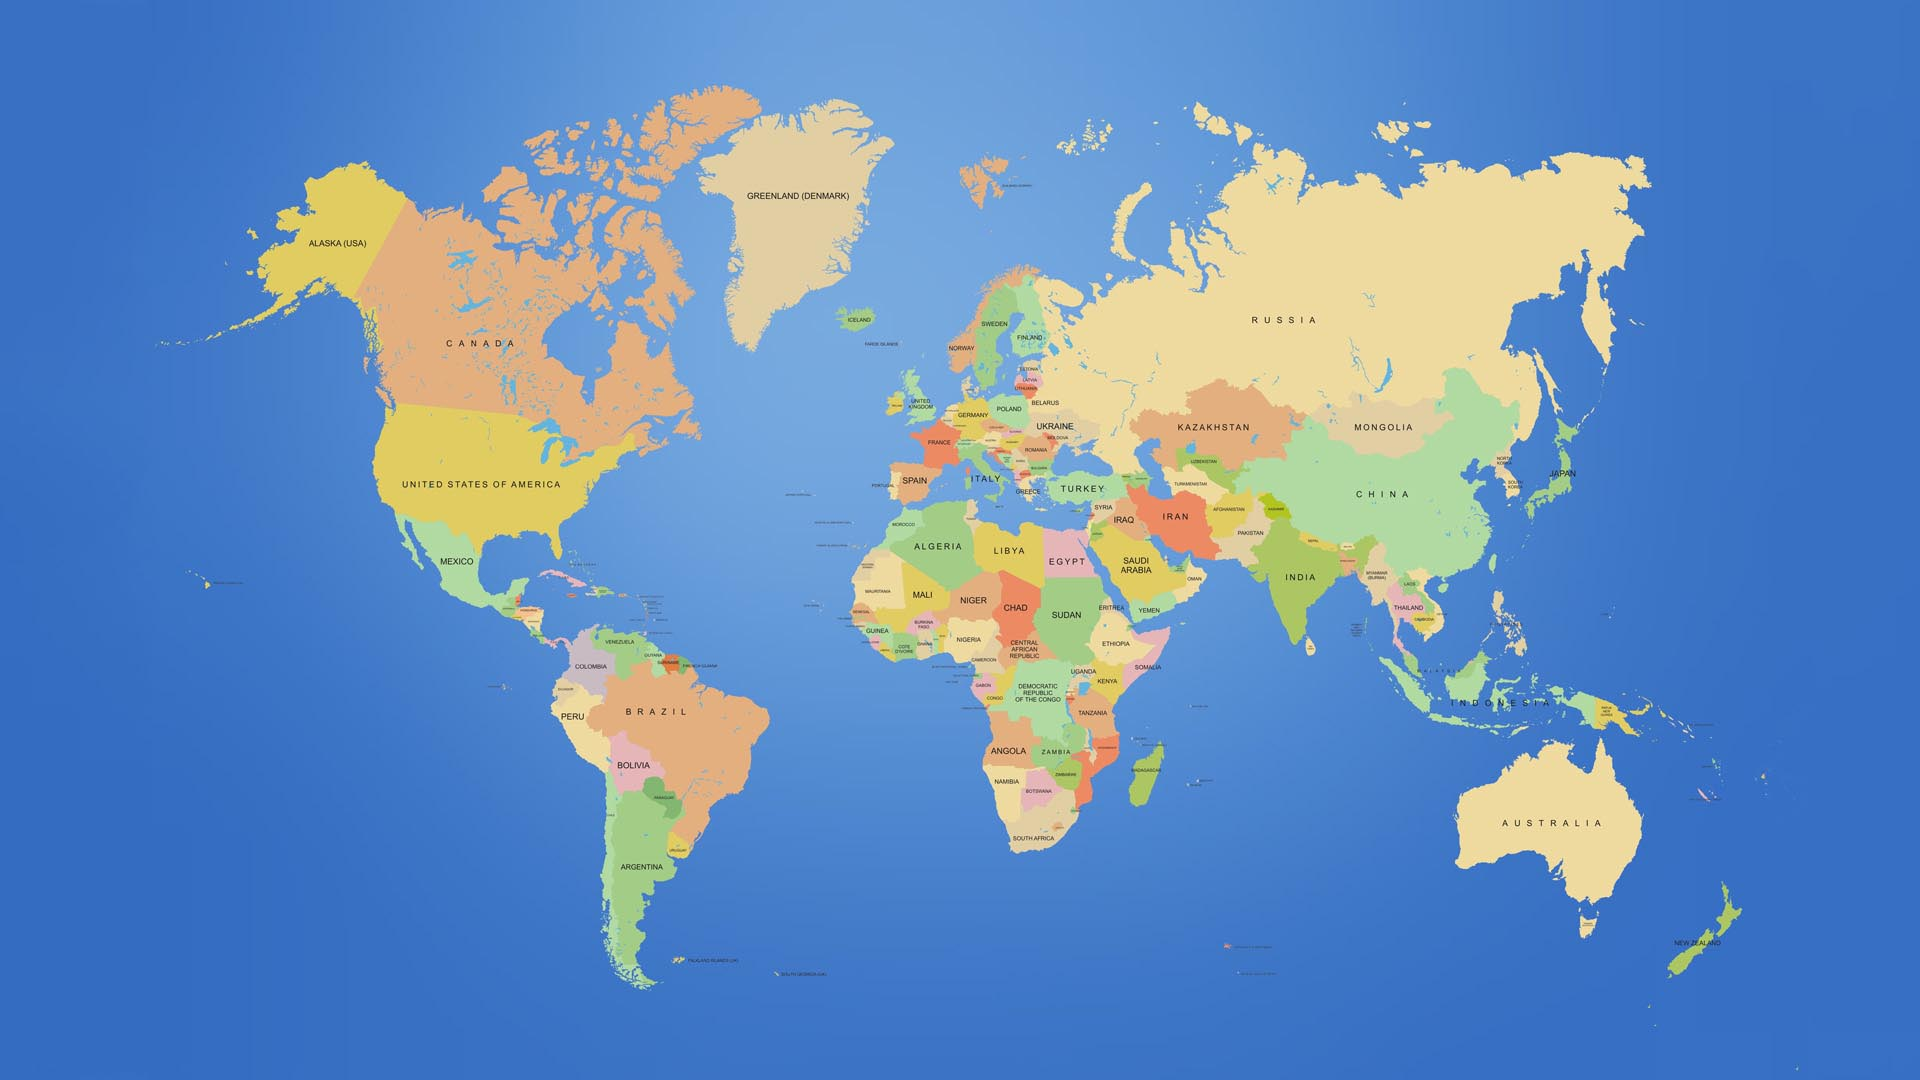 World political map hd wallpaper timekeeperwatches gumiabroncs Image collections